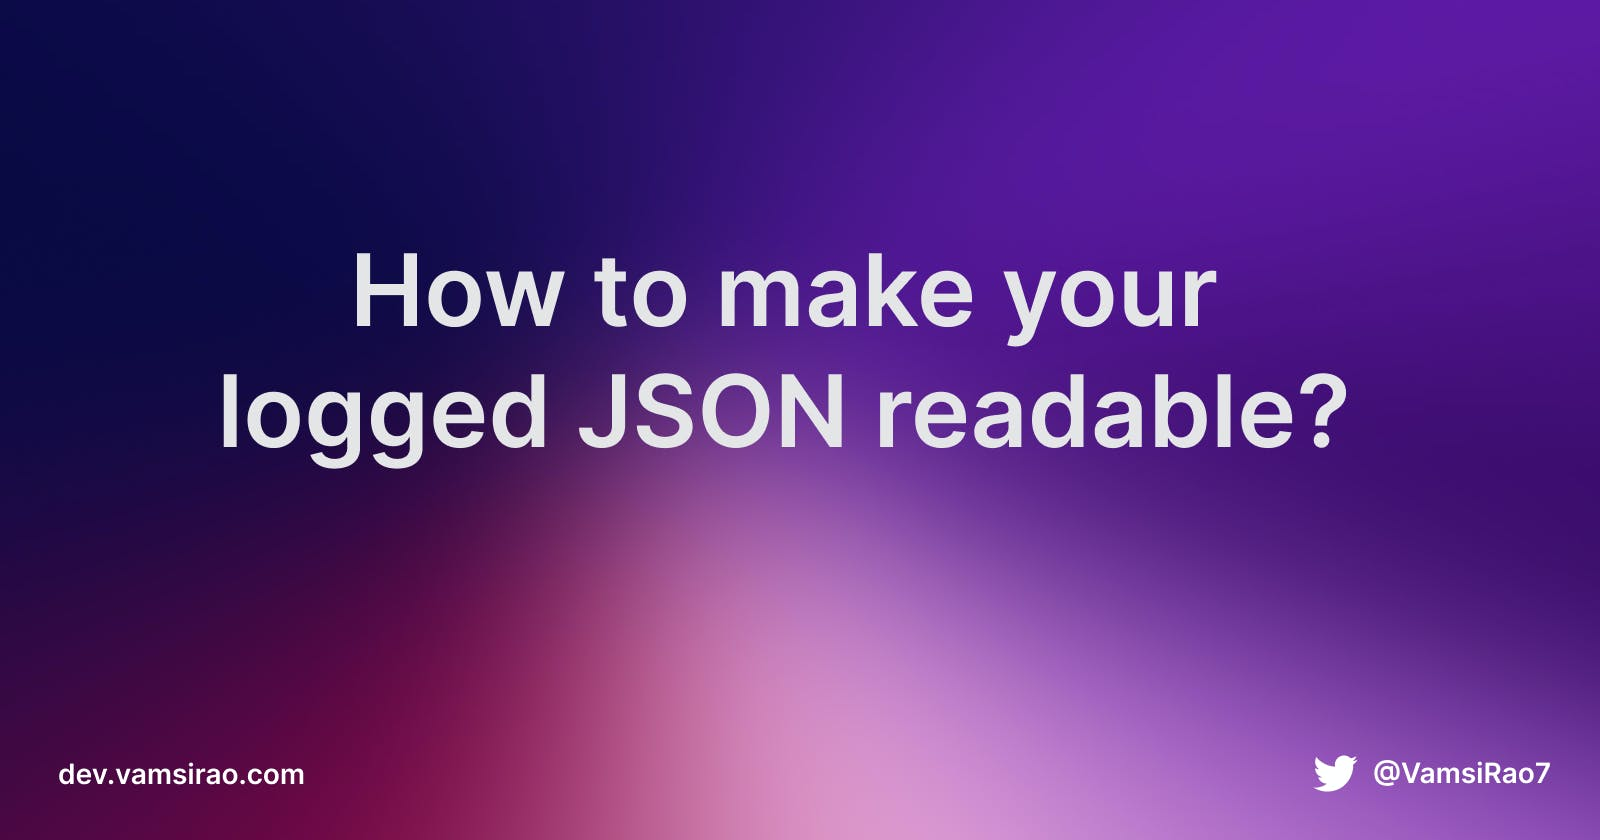 How to make your logged JSON readable?